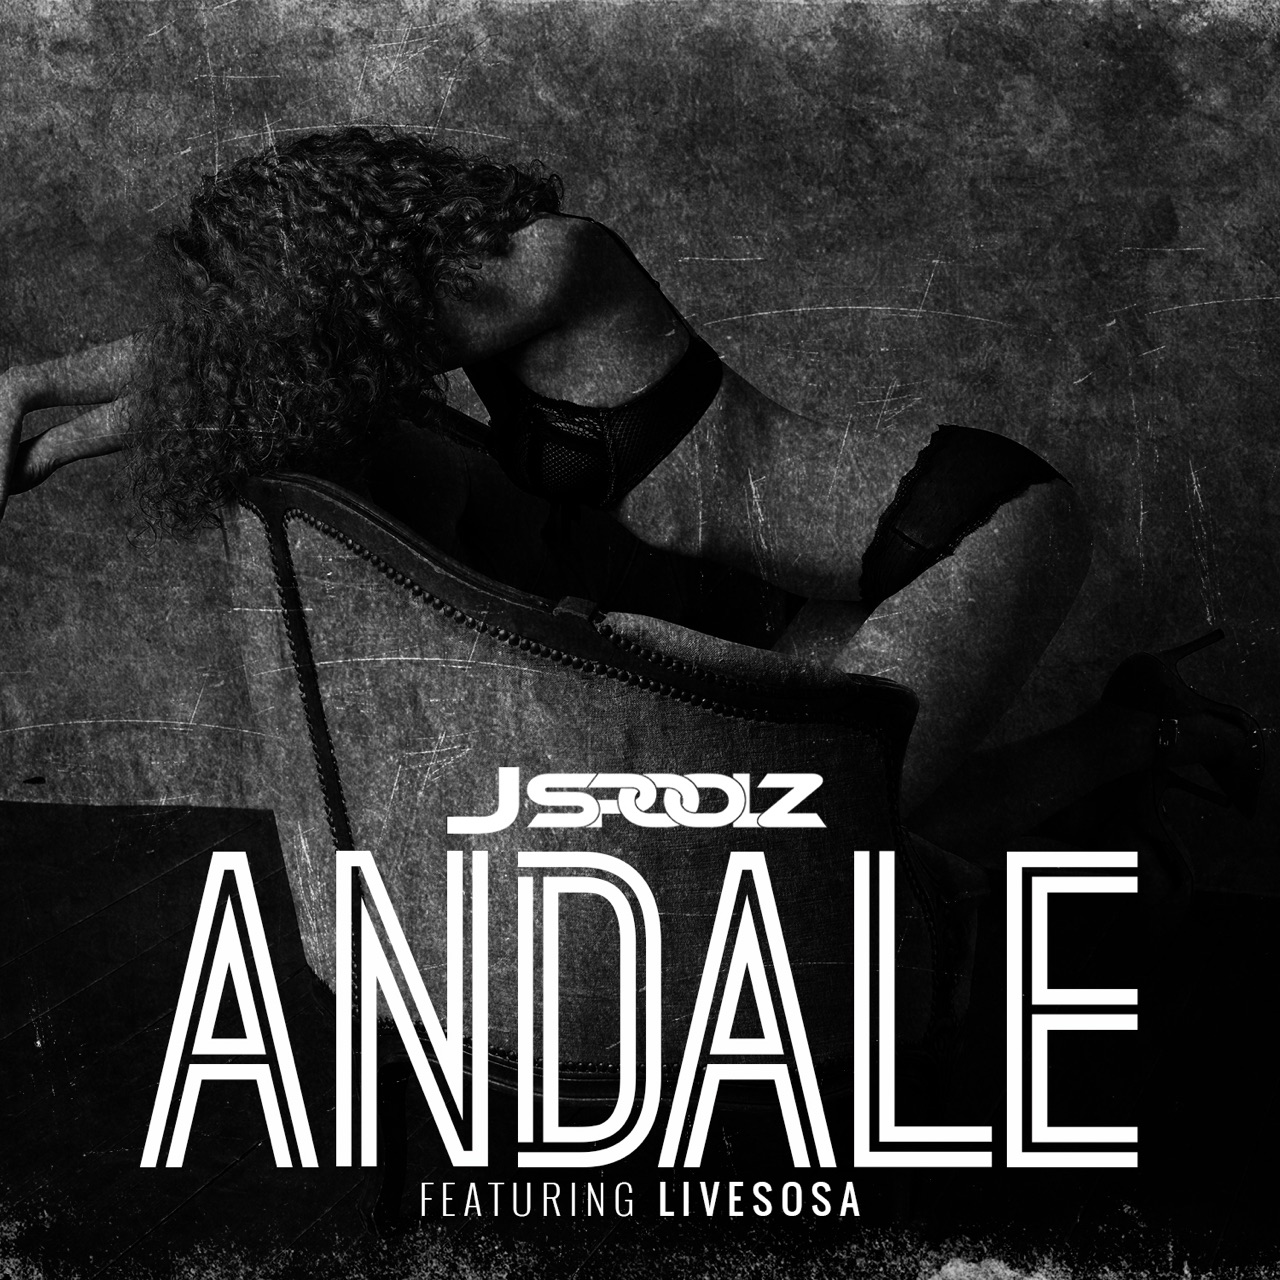 Video: J Spoolz – Andale Featuring Livesosa